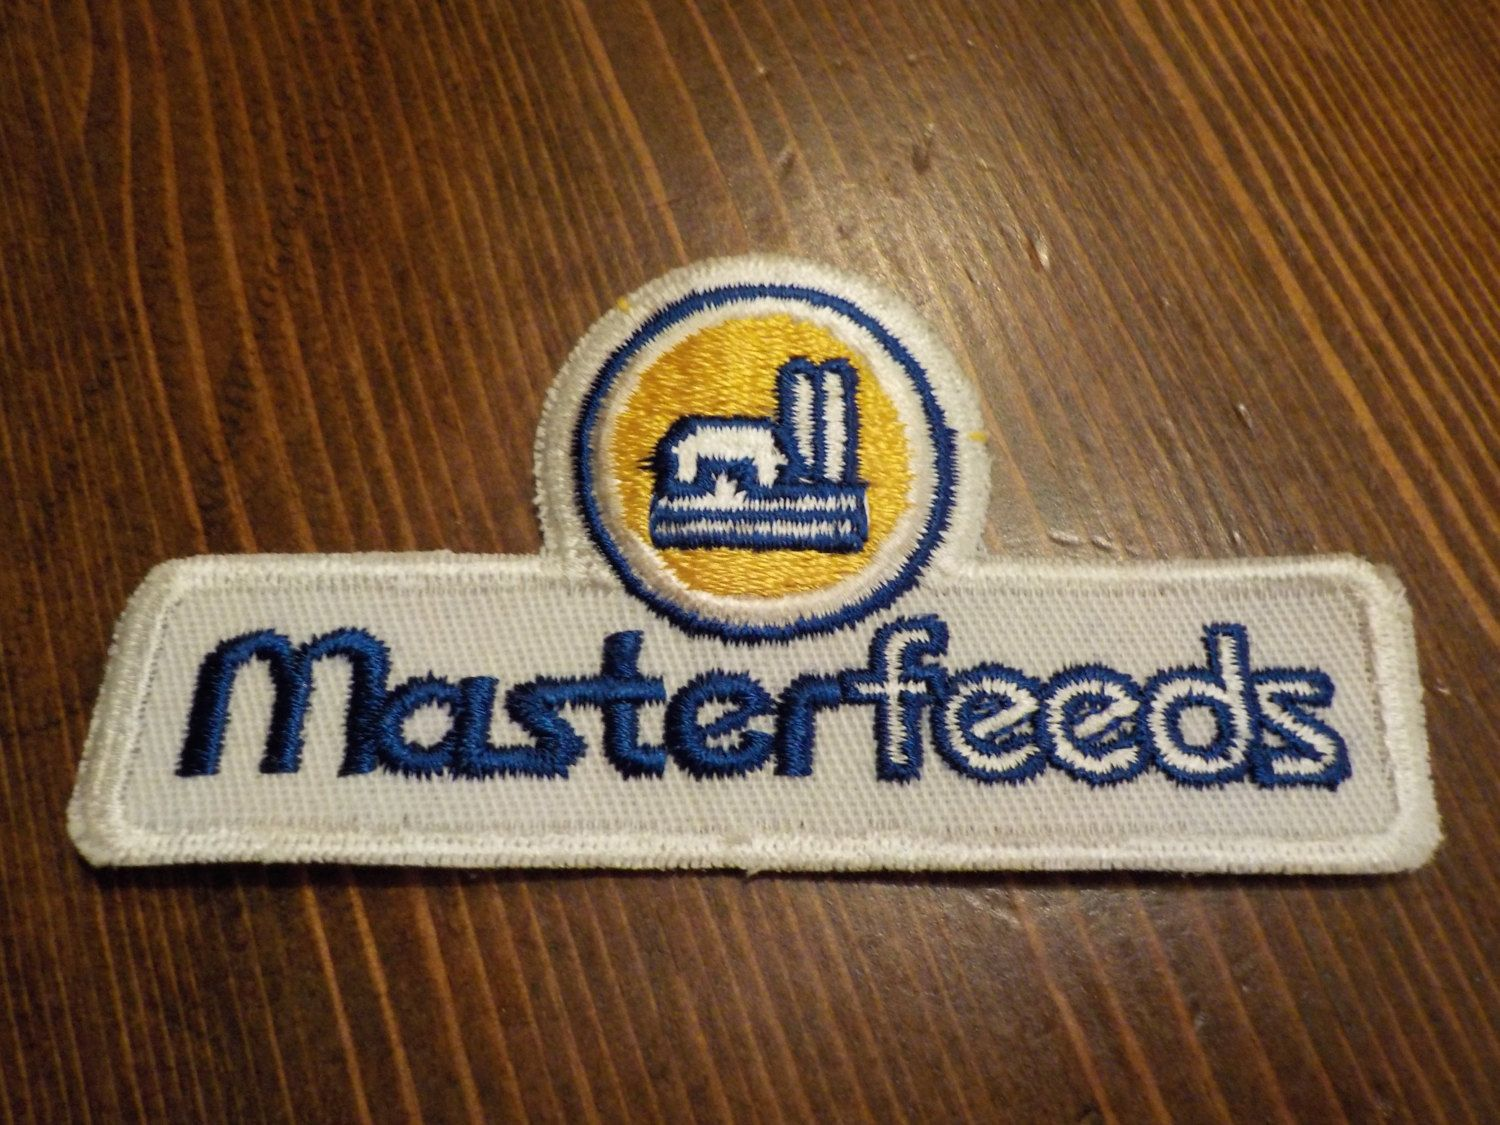 Master feeds patch applique crest by louisandrileys on etsy